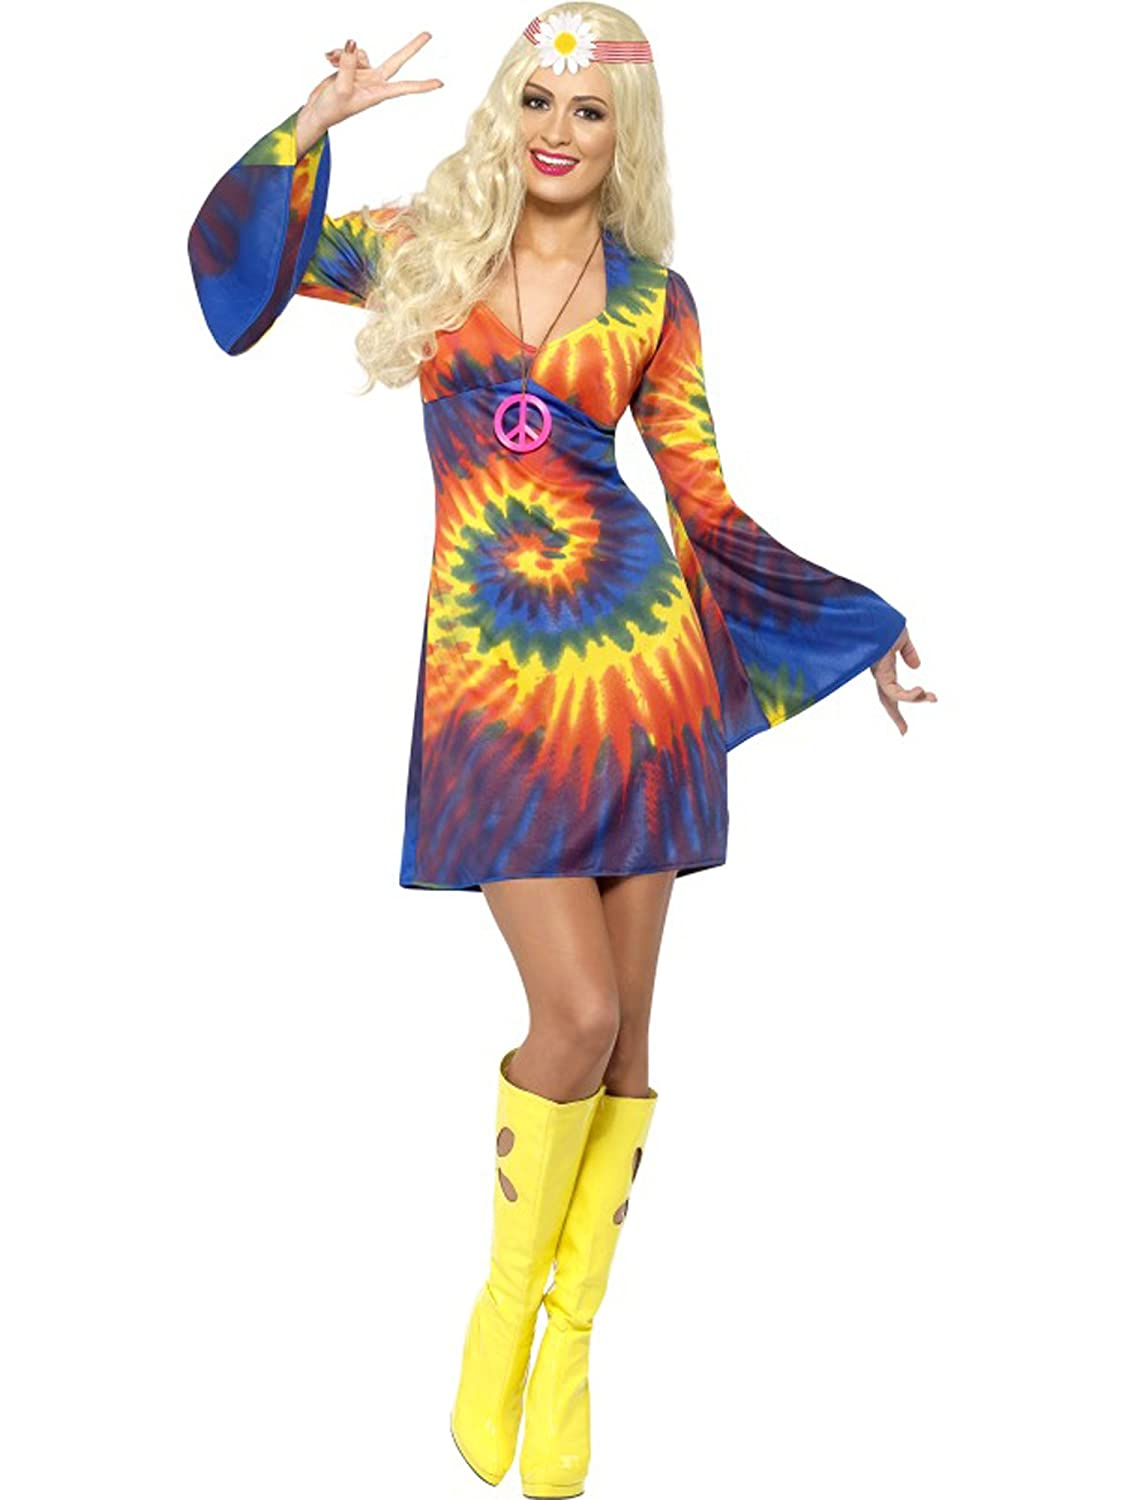 Hippie Costumes, Hippie Outfits 1960s Tie Dye Dress Costume $23.51 AT vintagedancer.com